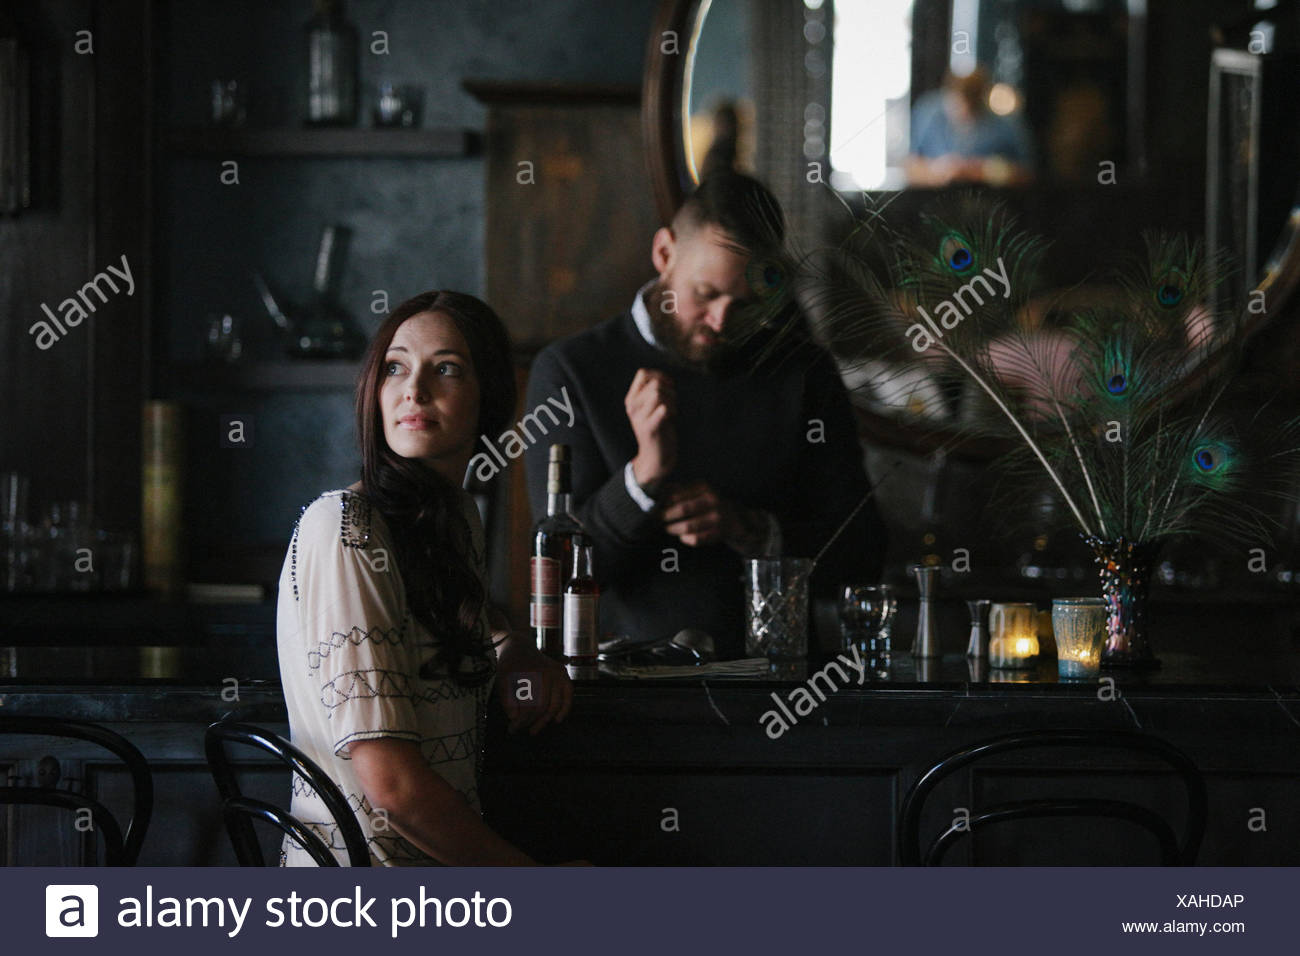 A woman and a bartender talking, and mixing drinks. - Stock Image